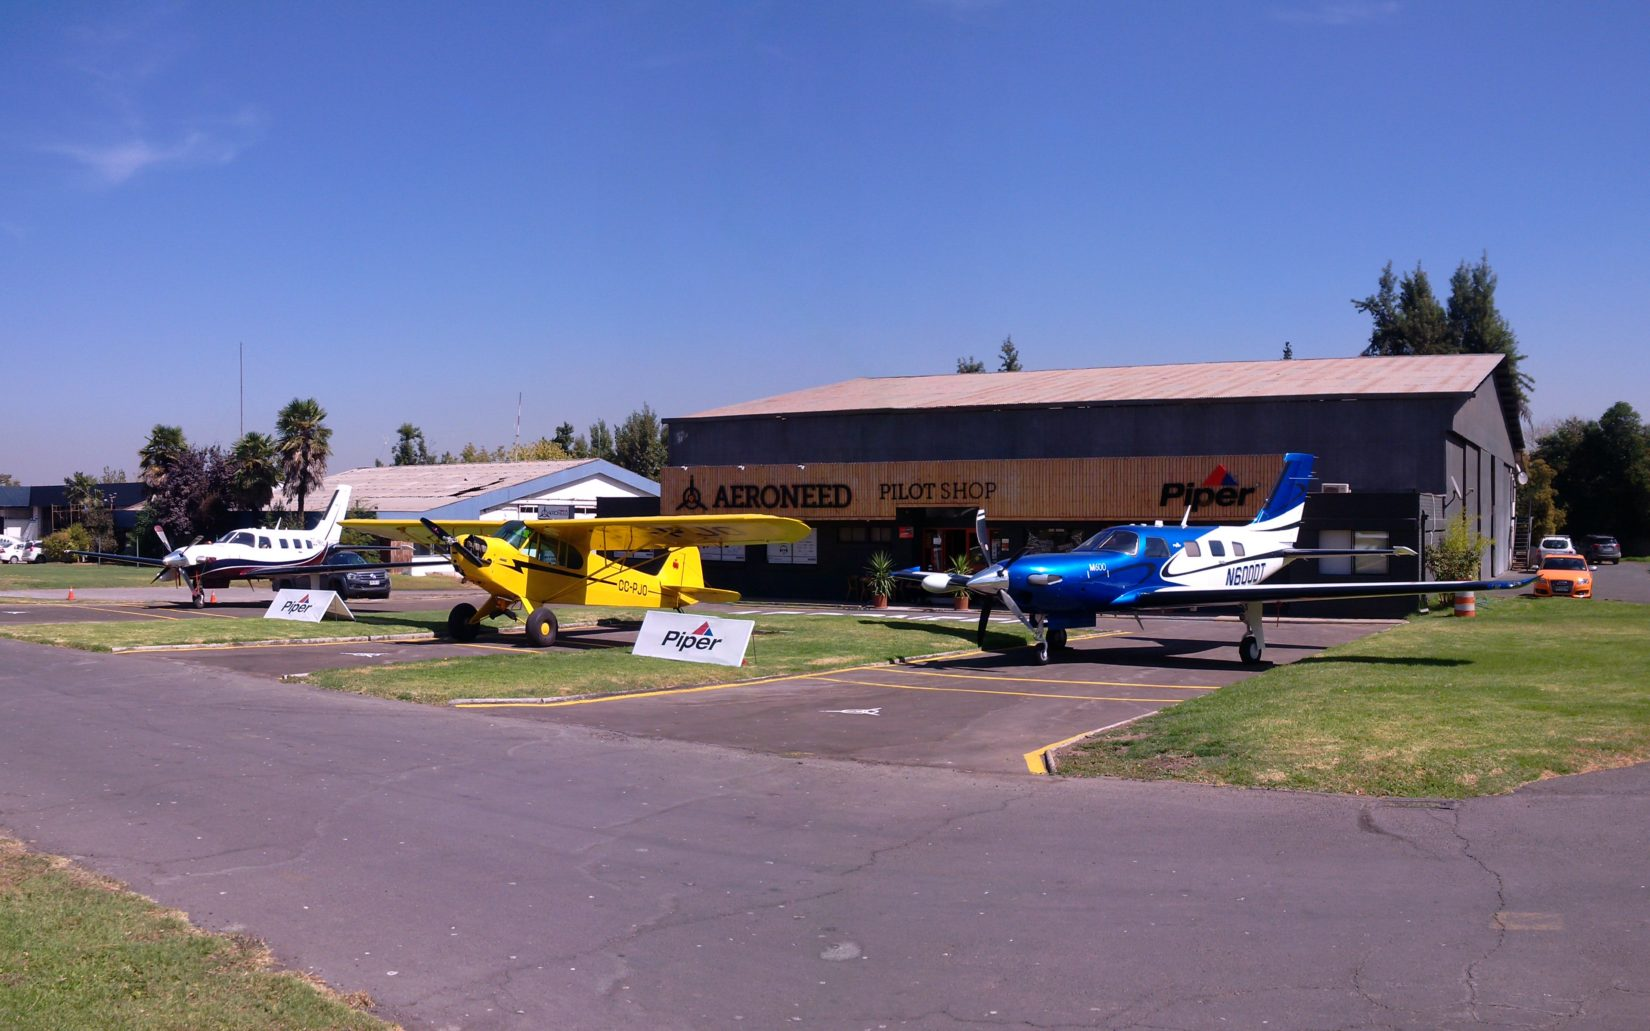 Piper Aircraft at Aeroneed